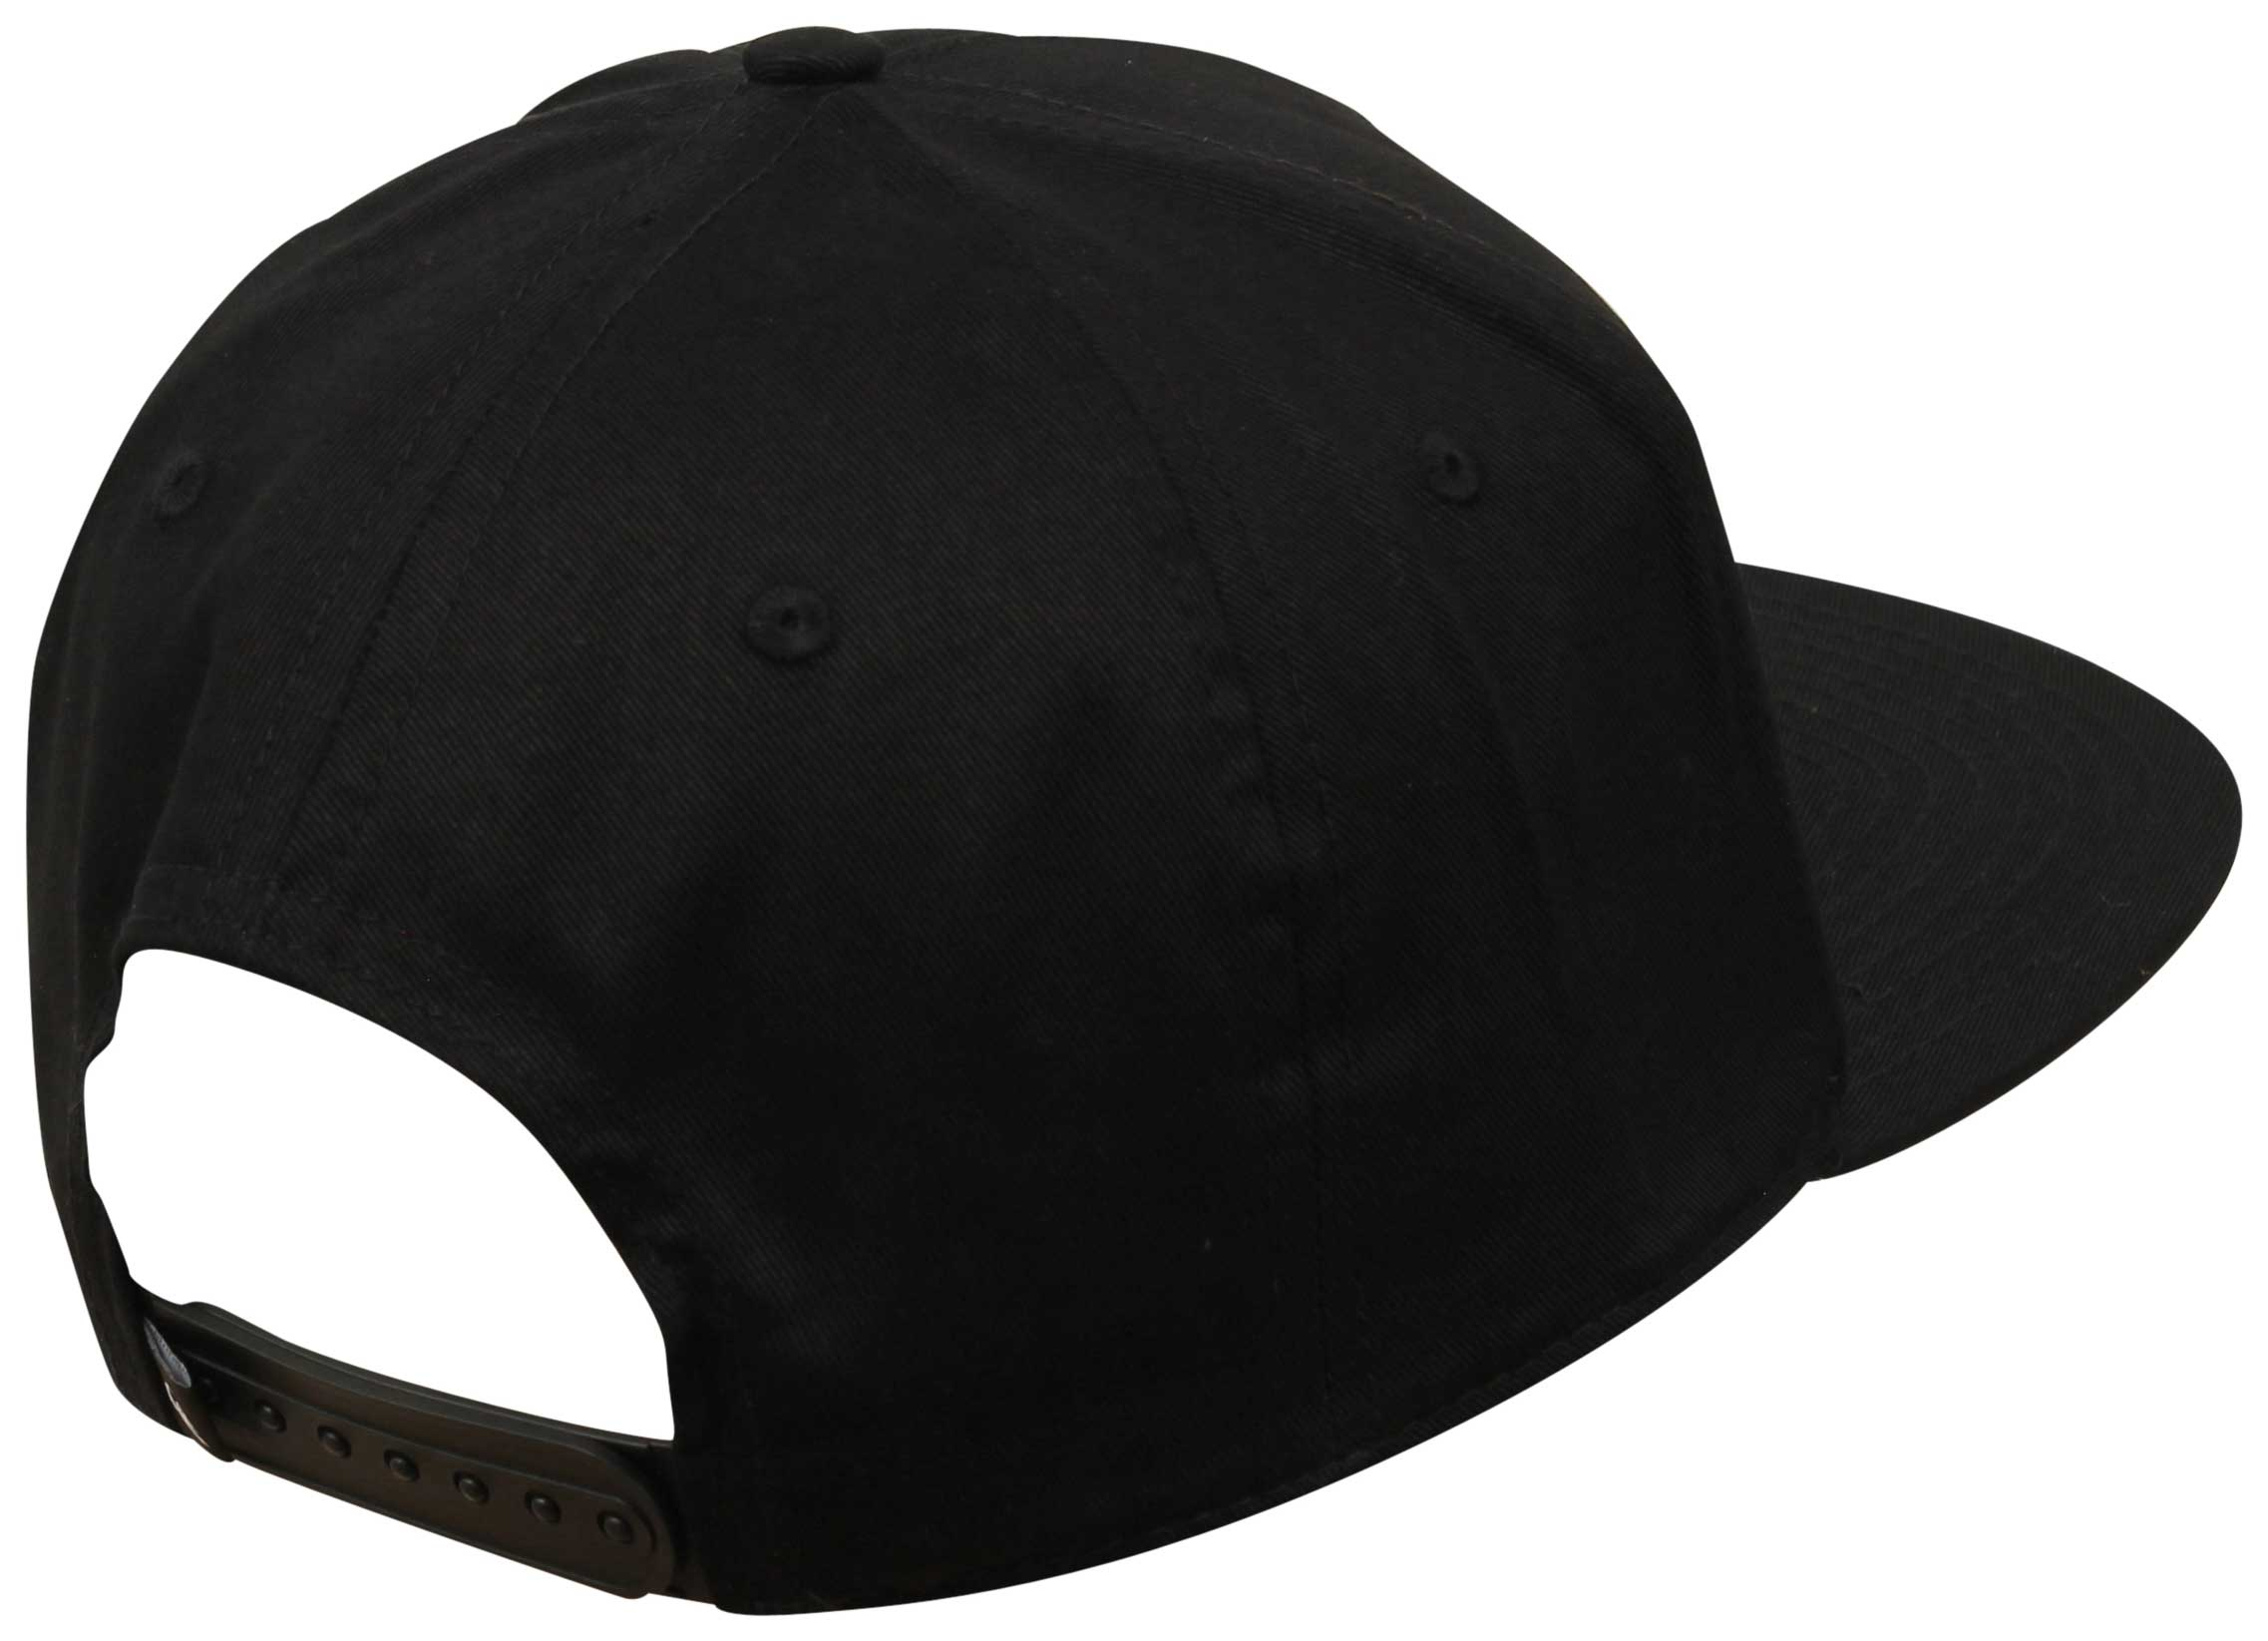 4b3c4fba0af Quiksilver Simplay Snapback Hat - Black For Sale at Surfboards.com ...